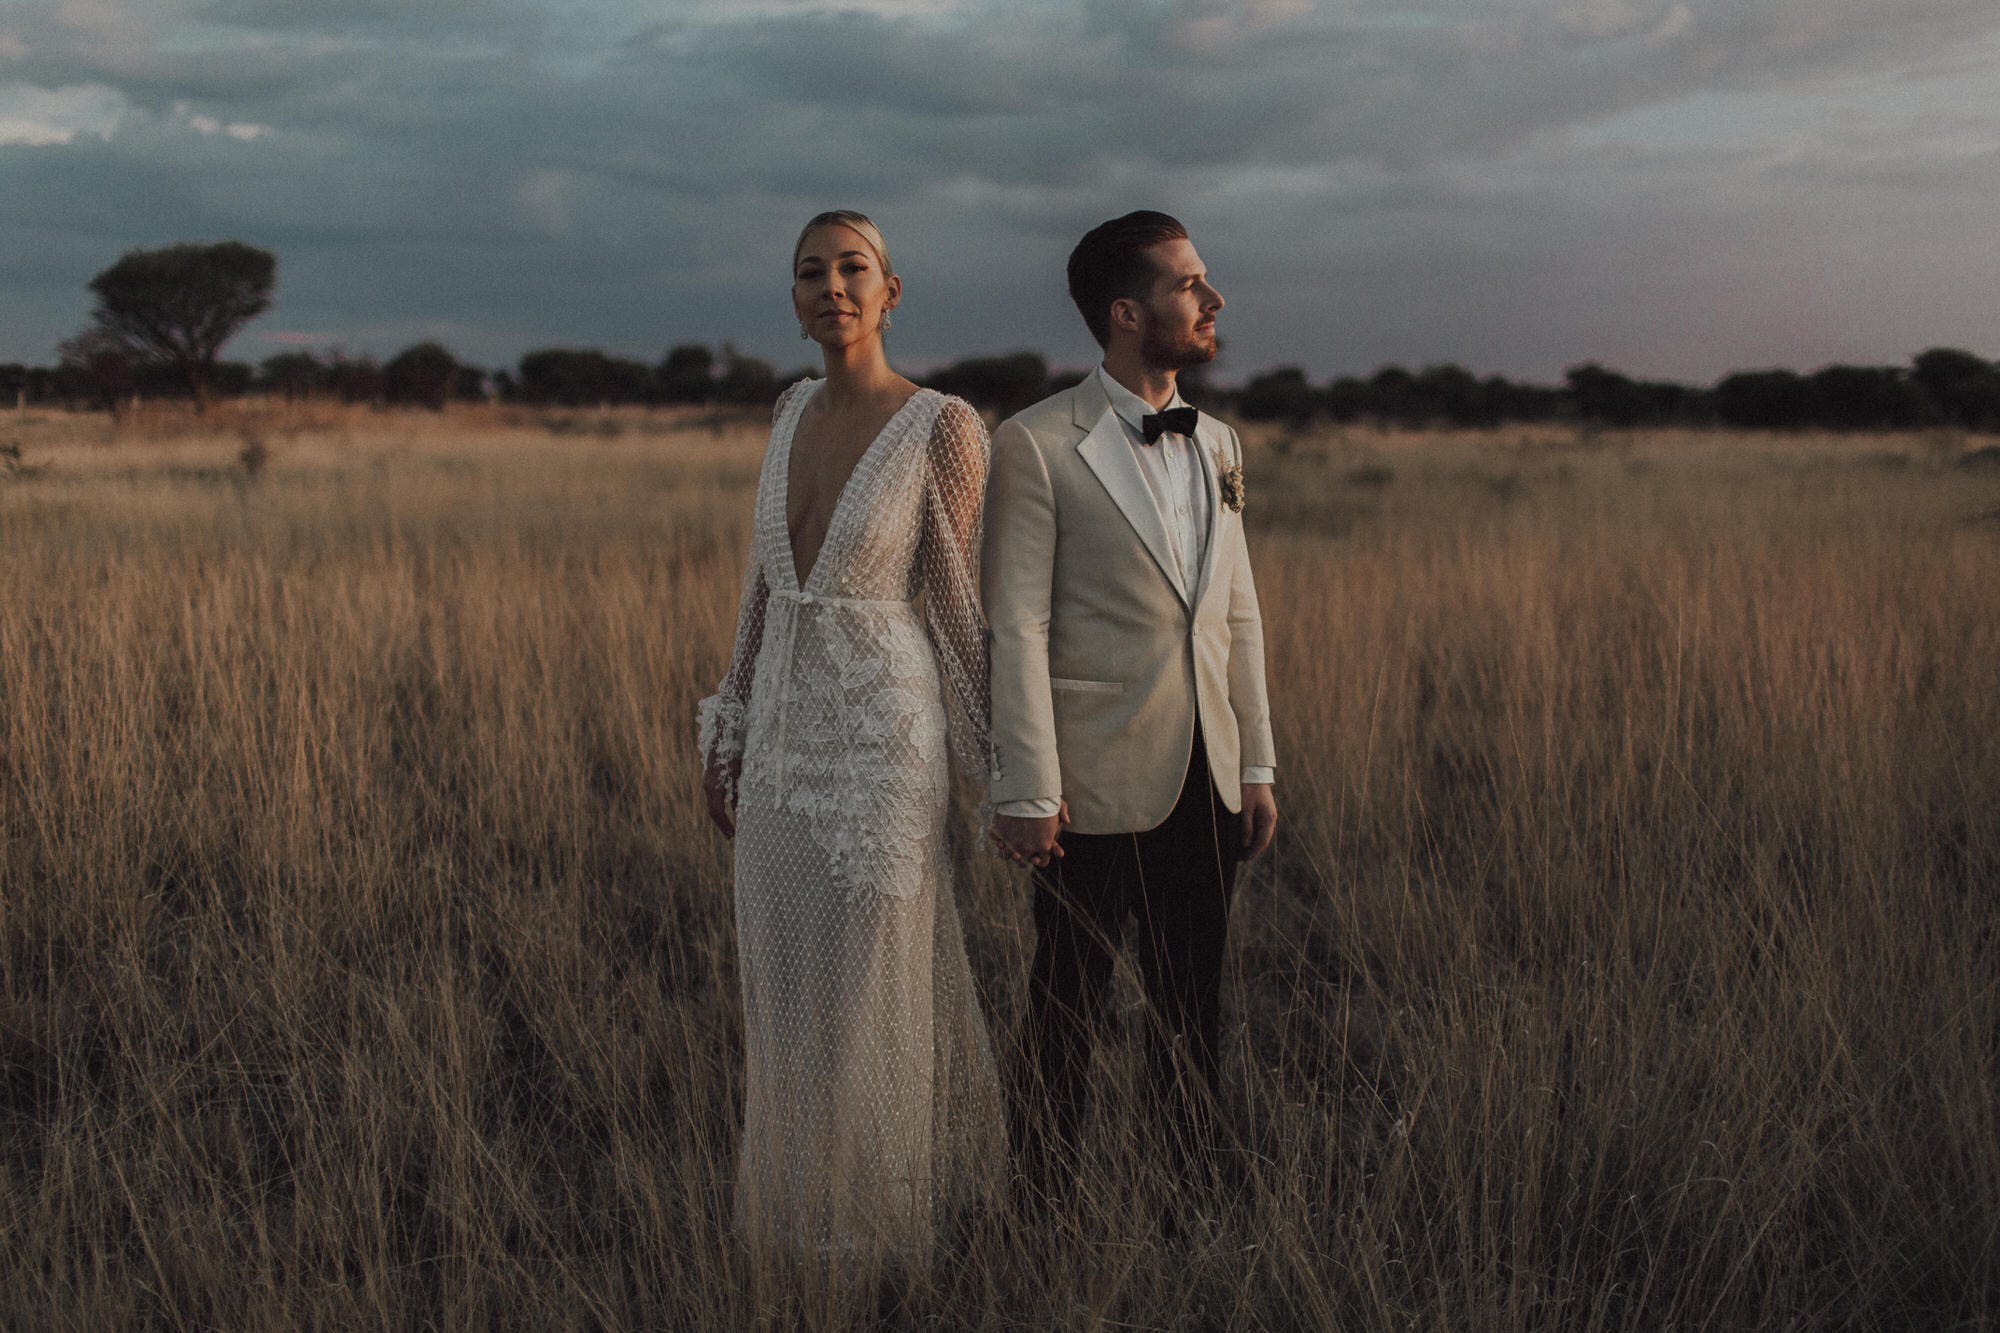 destination wedding photography husband and wife team